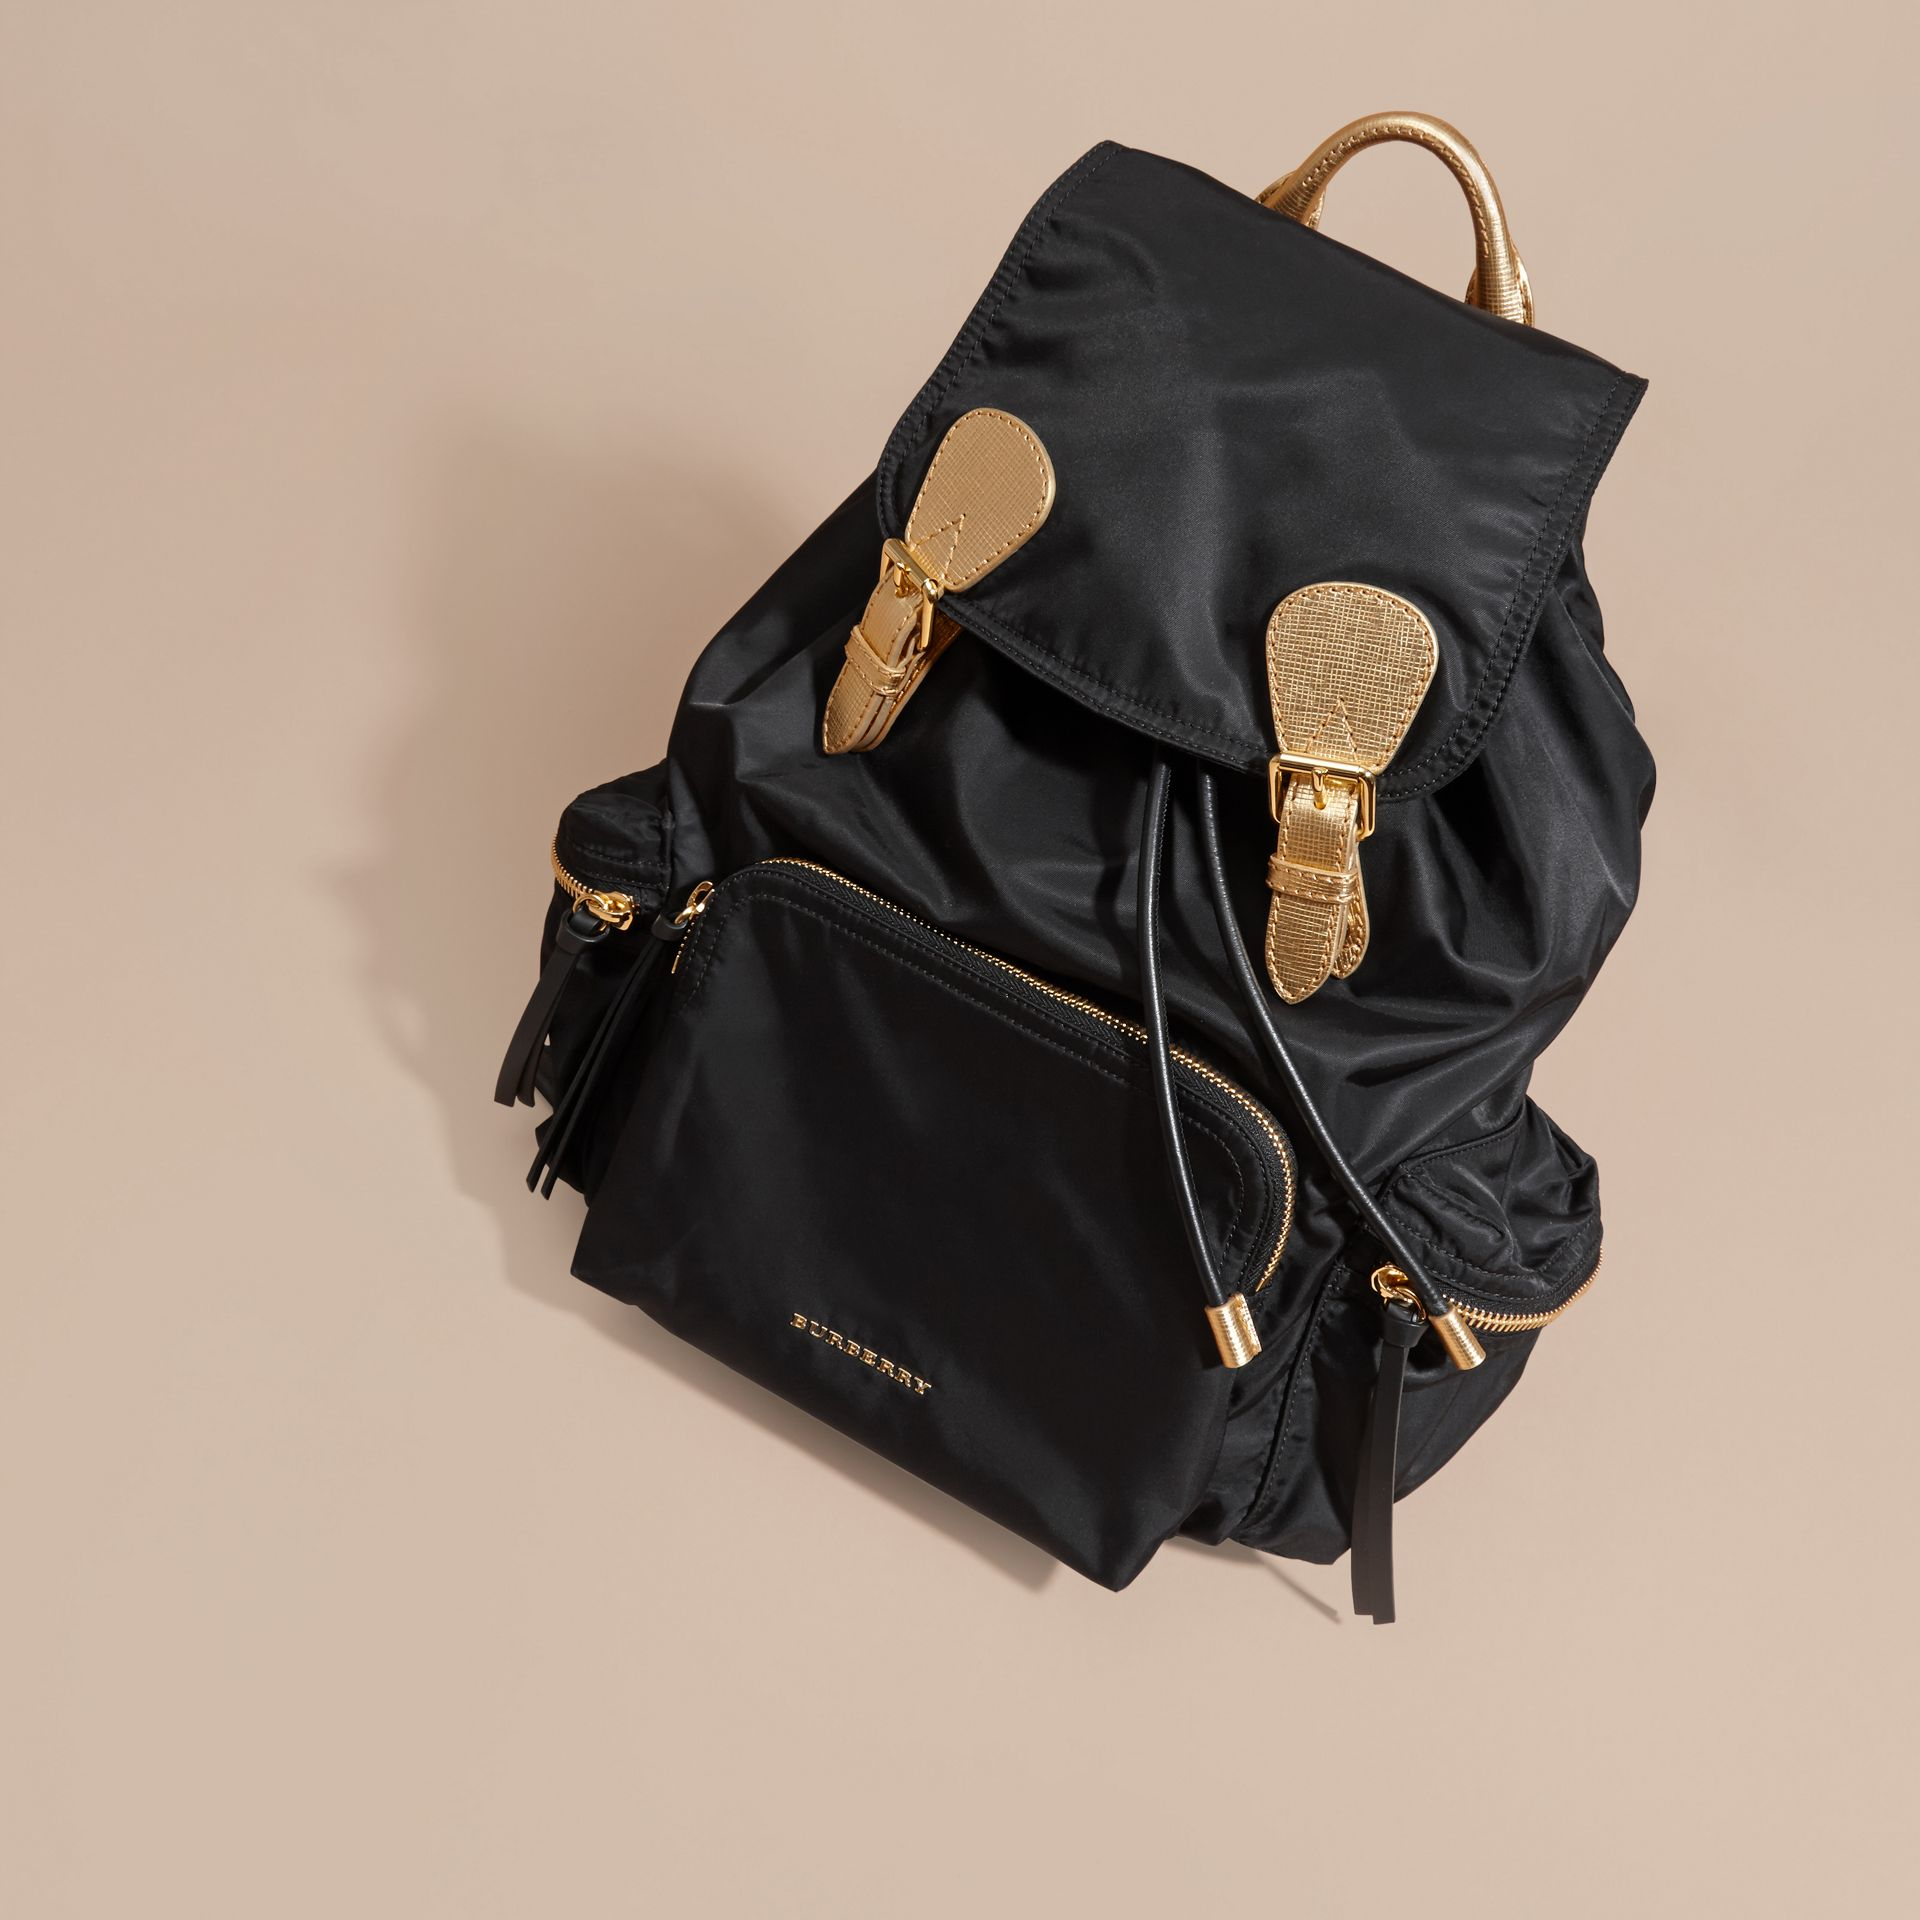 Black/gold The Large Rucksack in Two-tone Nylon and Leather - gallery image 8